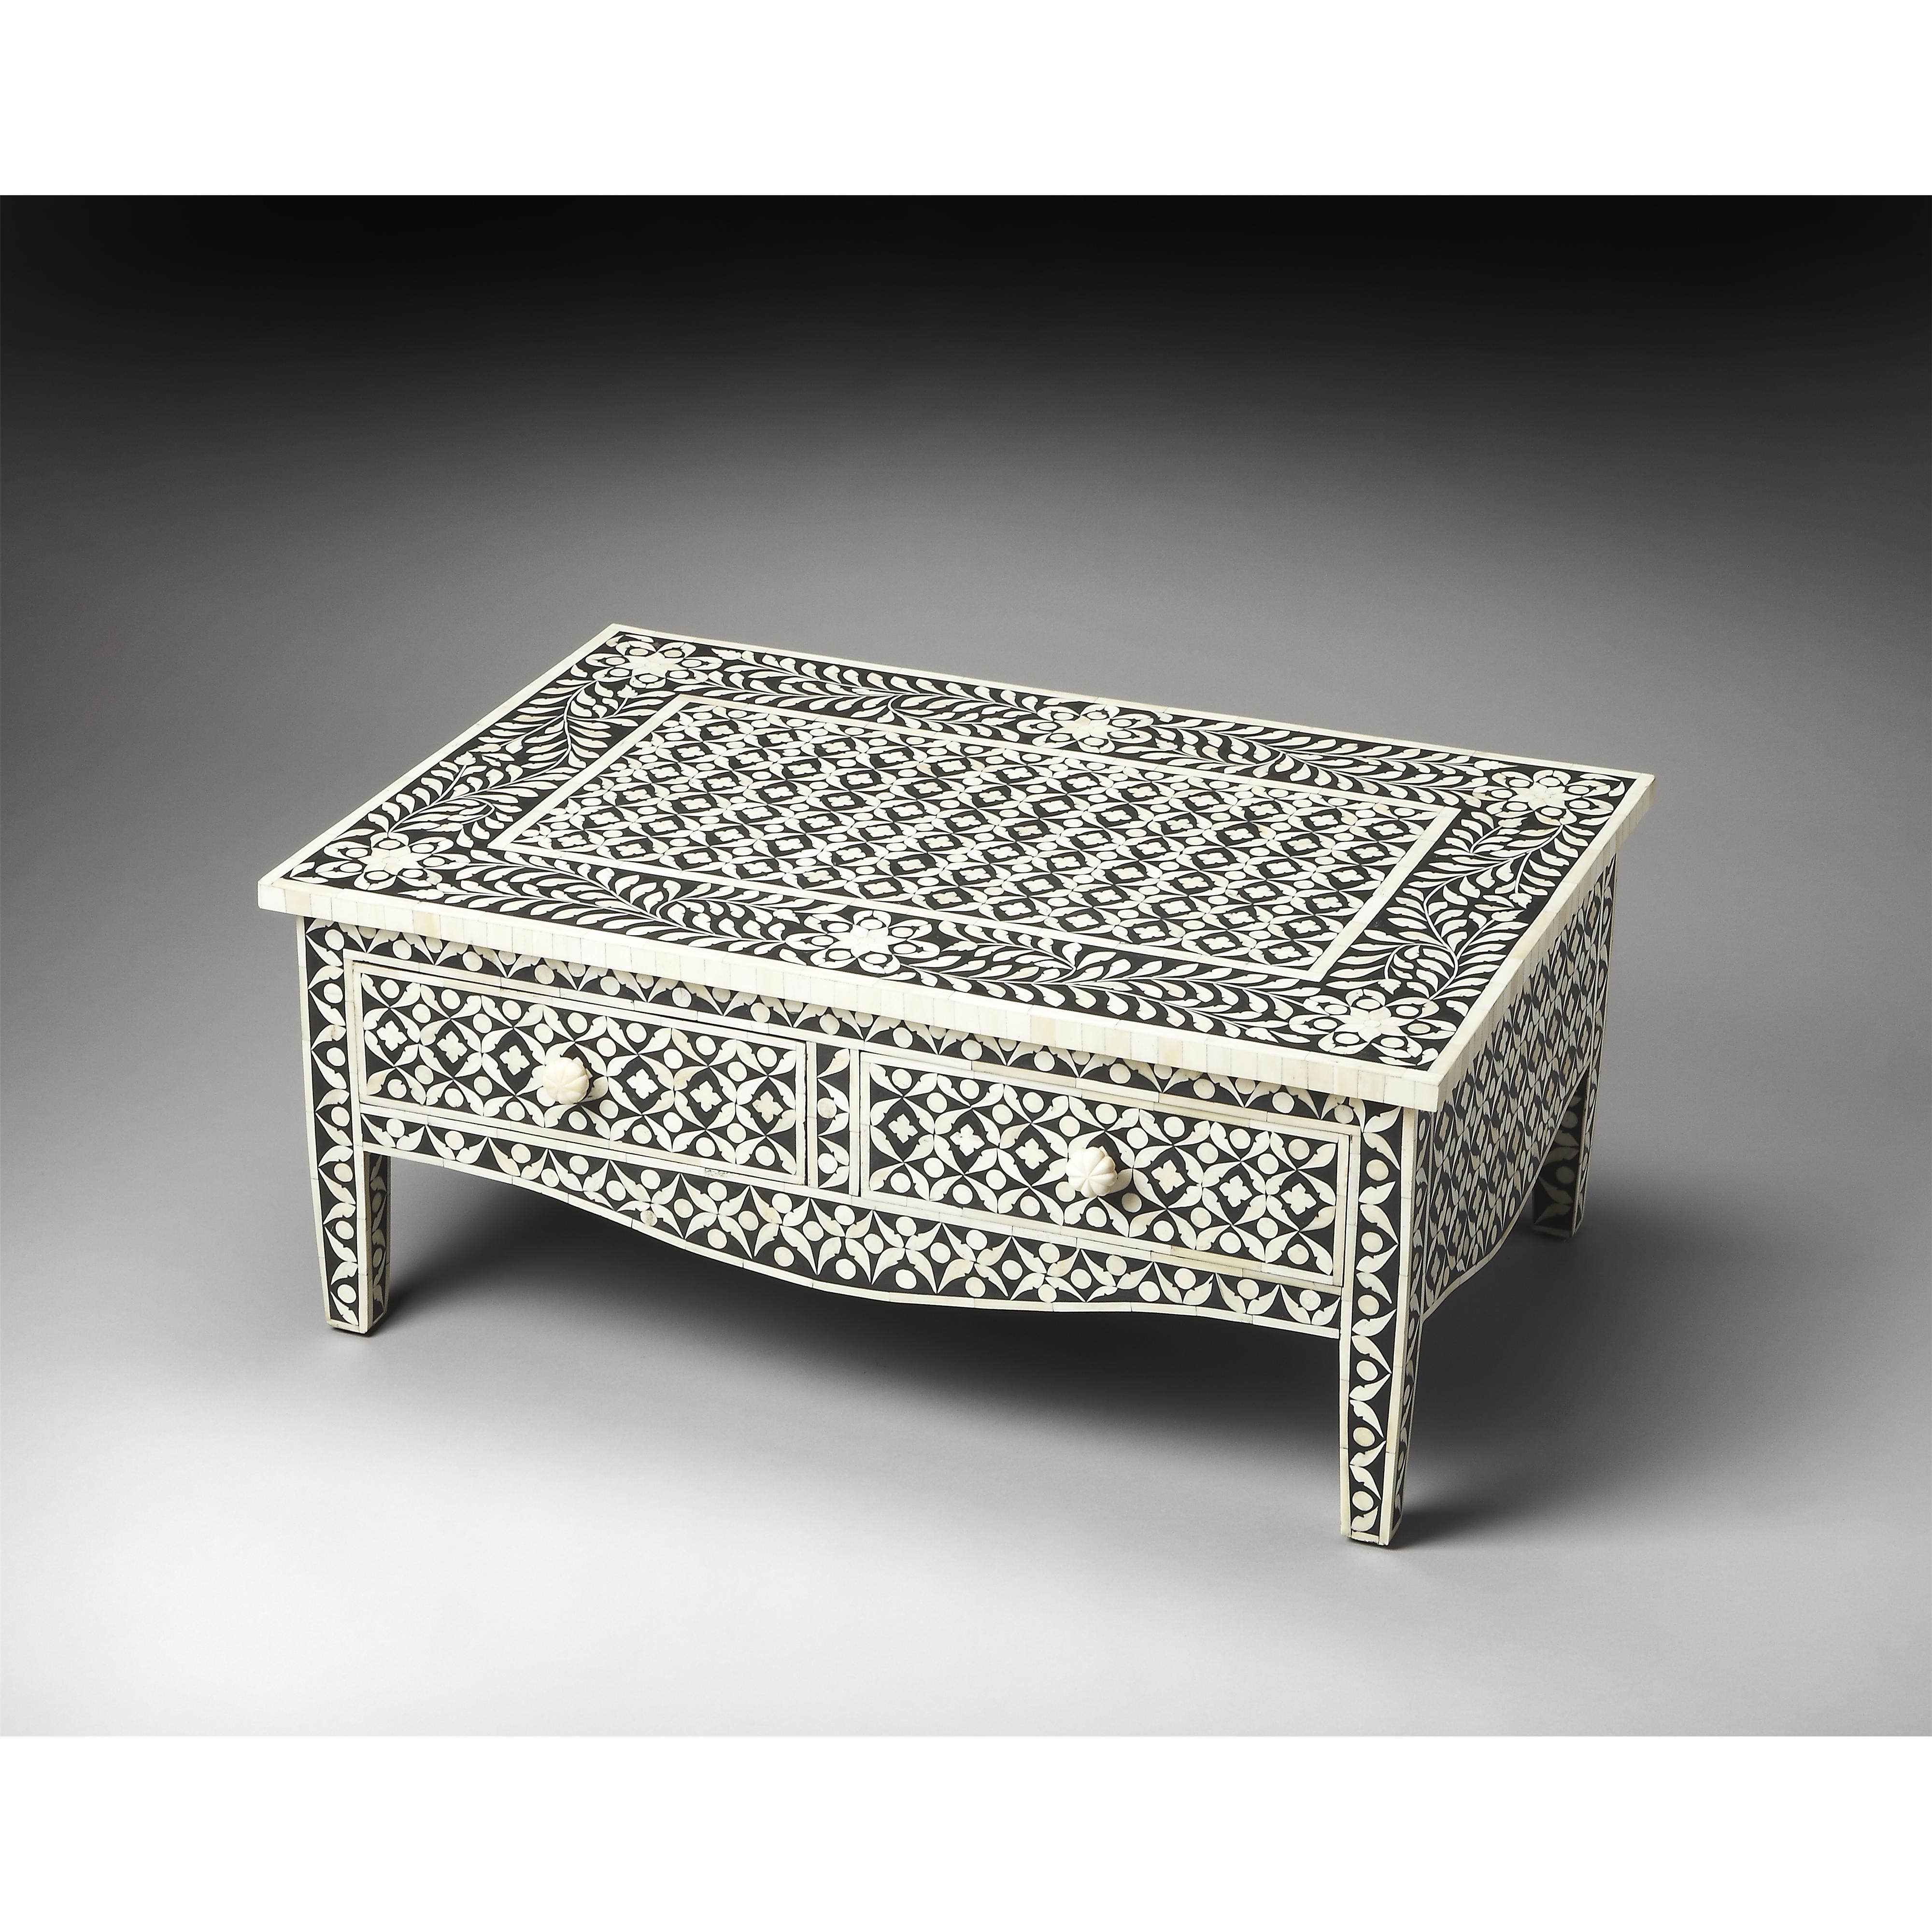 Butler Specialty Company Heritage Cocktail Table - Item Number: 3226070